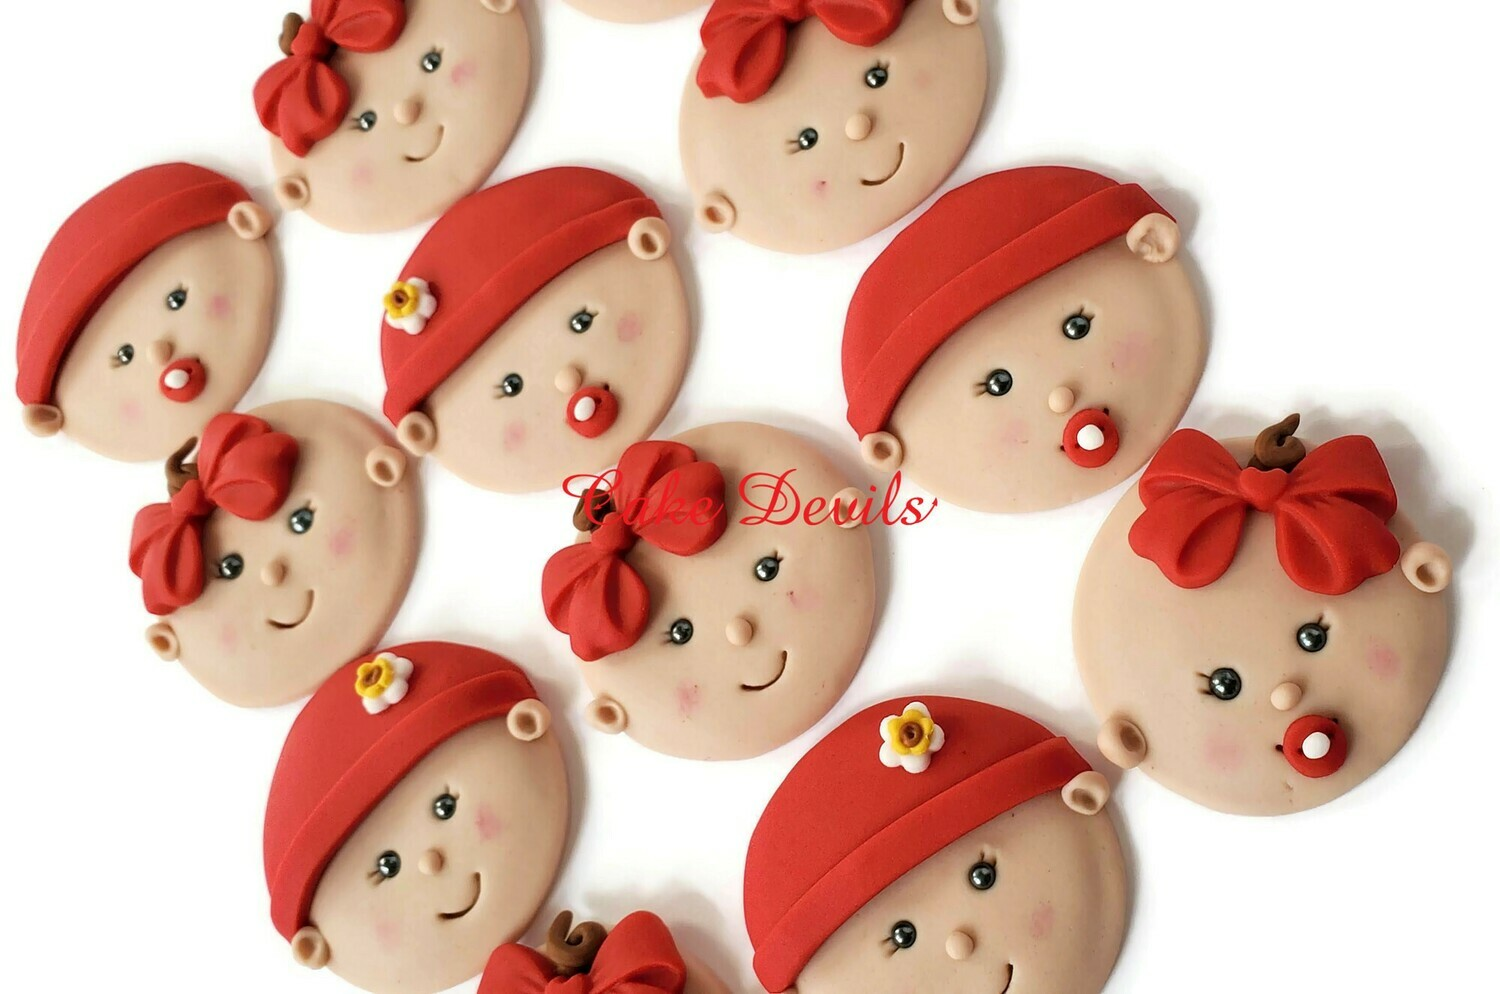 Baby Face Fondant Cupcake Toppers, Perfect for any Baby Shower Cake Decorations